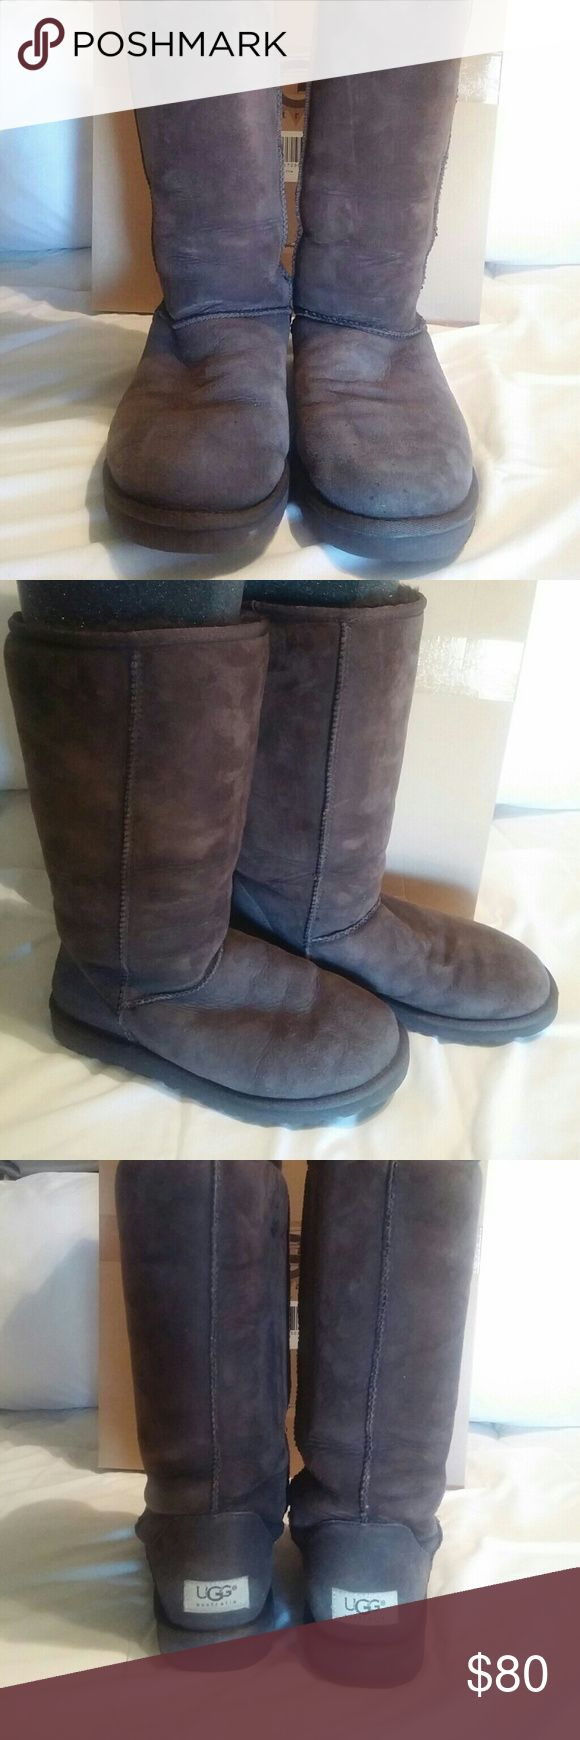 Ugg classic tall boots Ugg classic tall, minimal wear, originally bought from Victoria's secret UGG Shoes Winter & Rain Boots